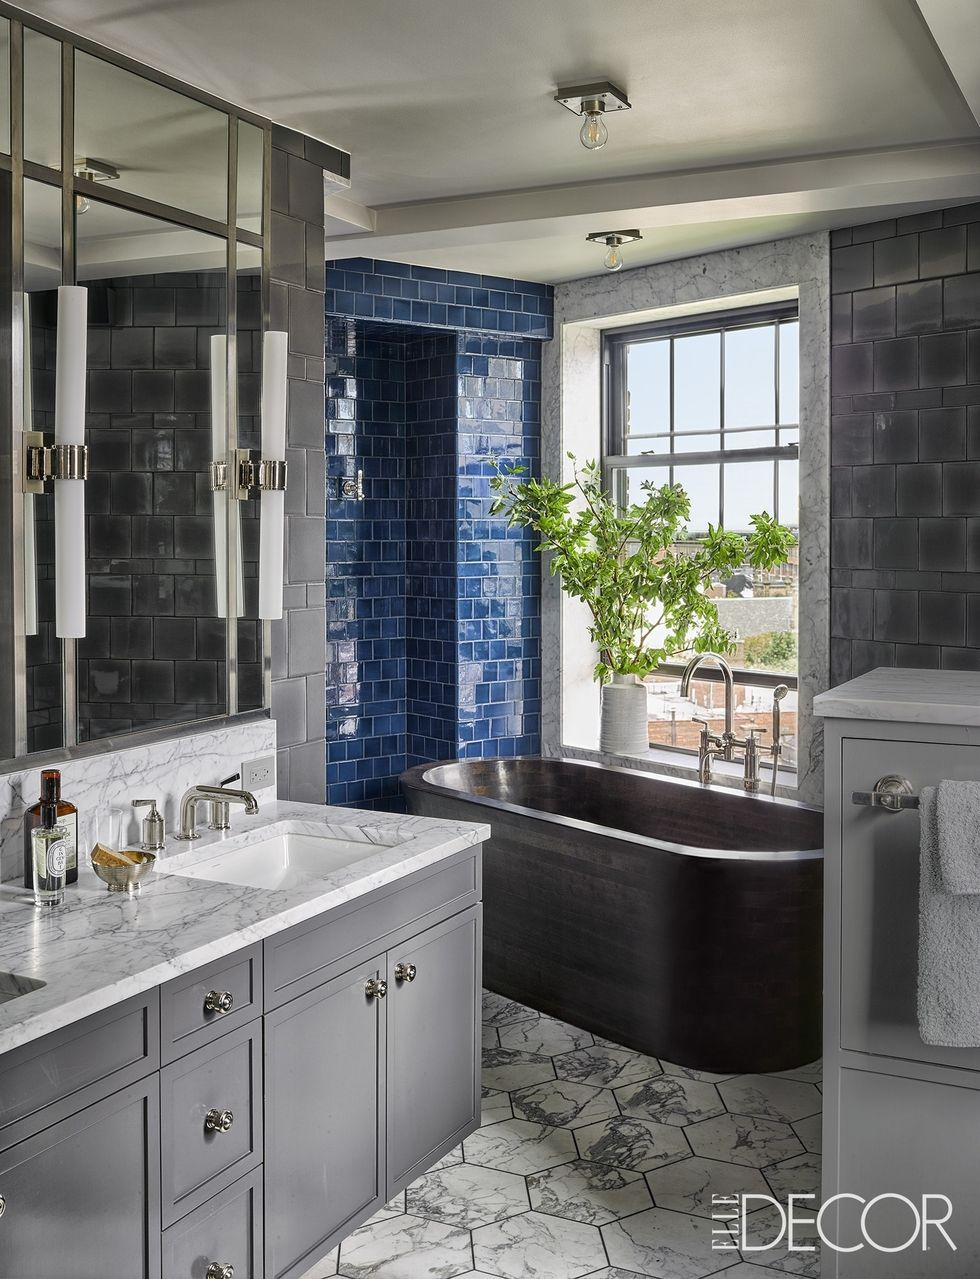 9 Best Bathroom Design Ideas - Small & Large Bathroom Remodel Ideas